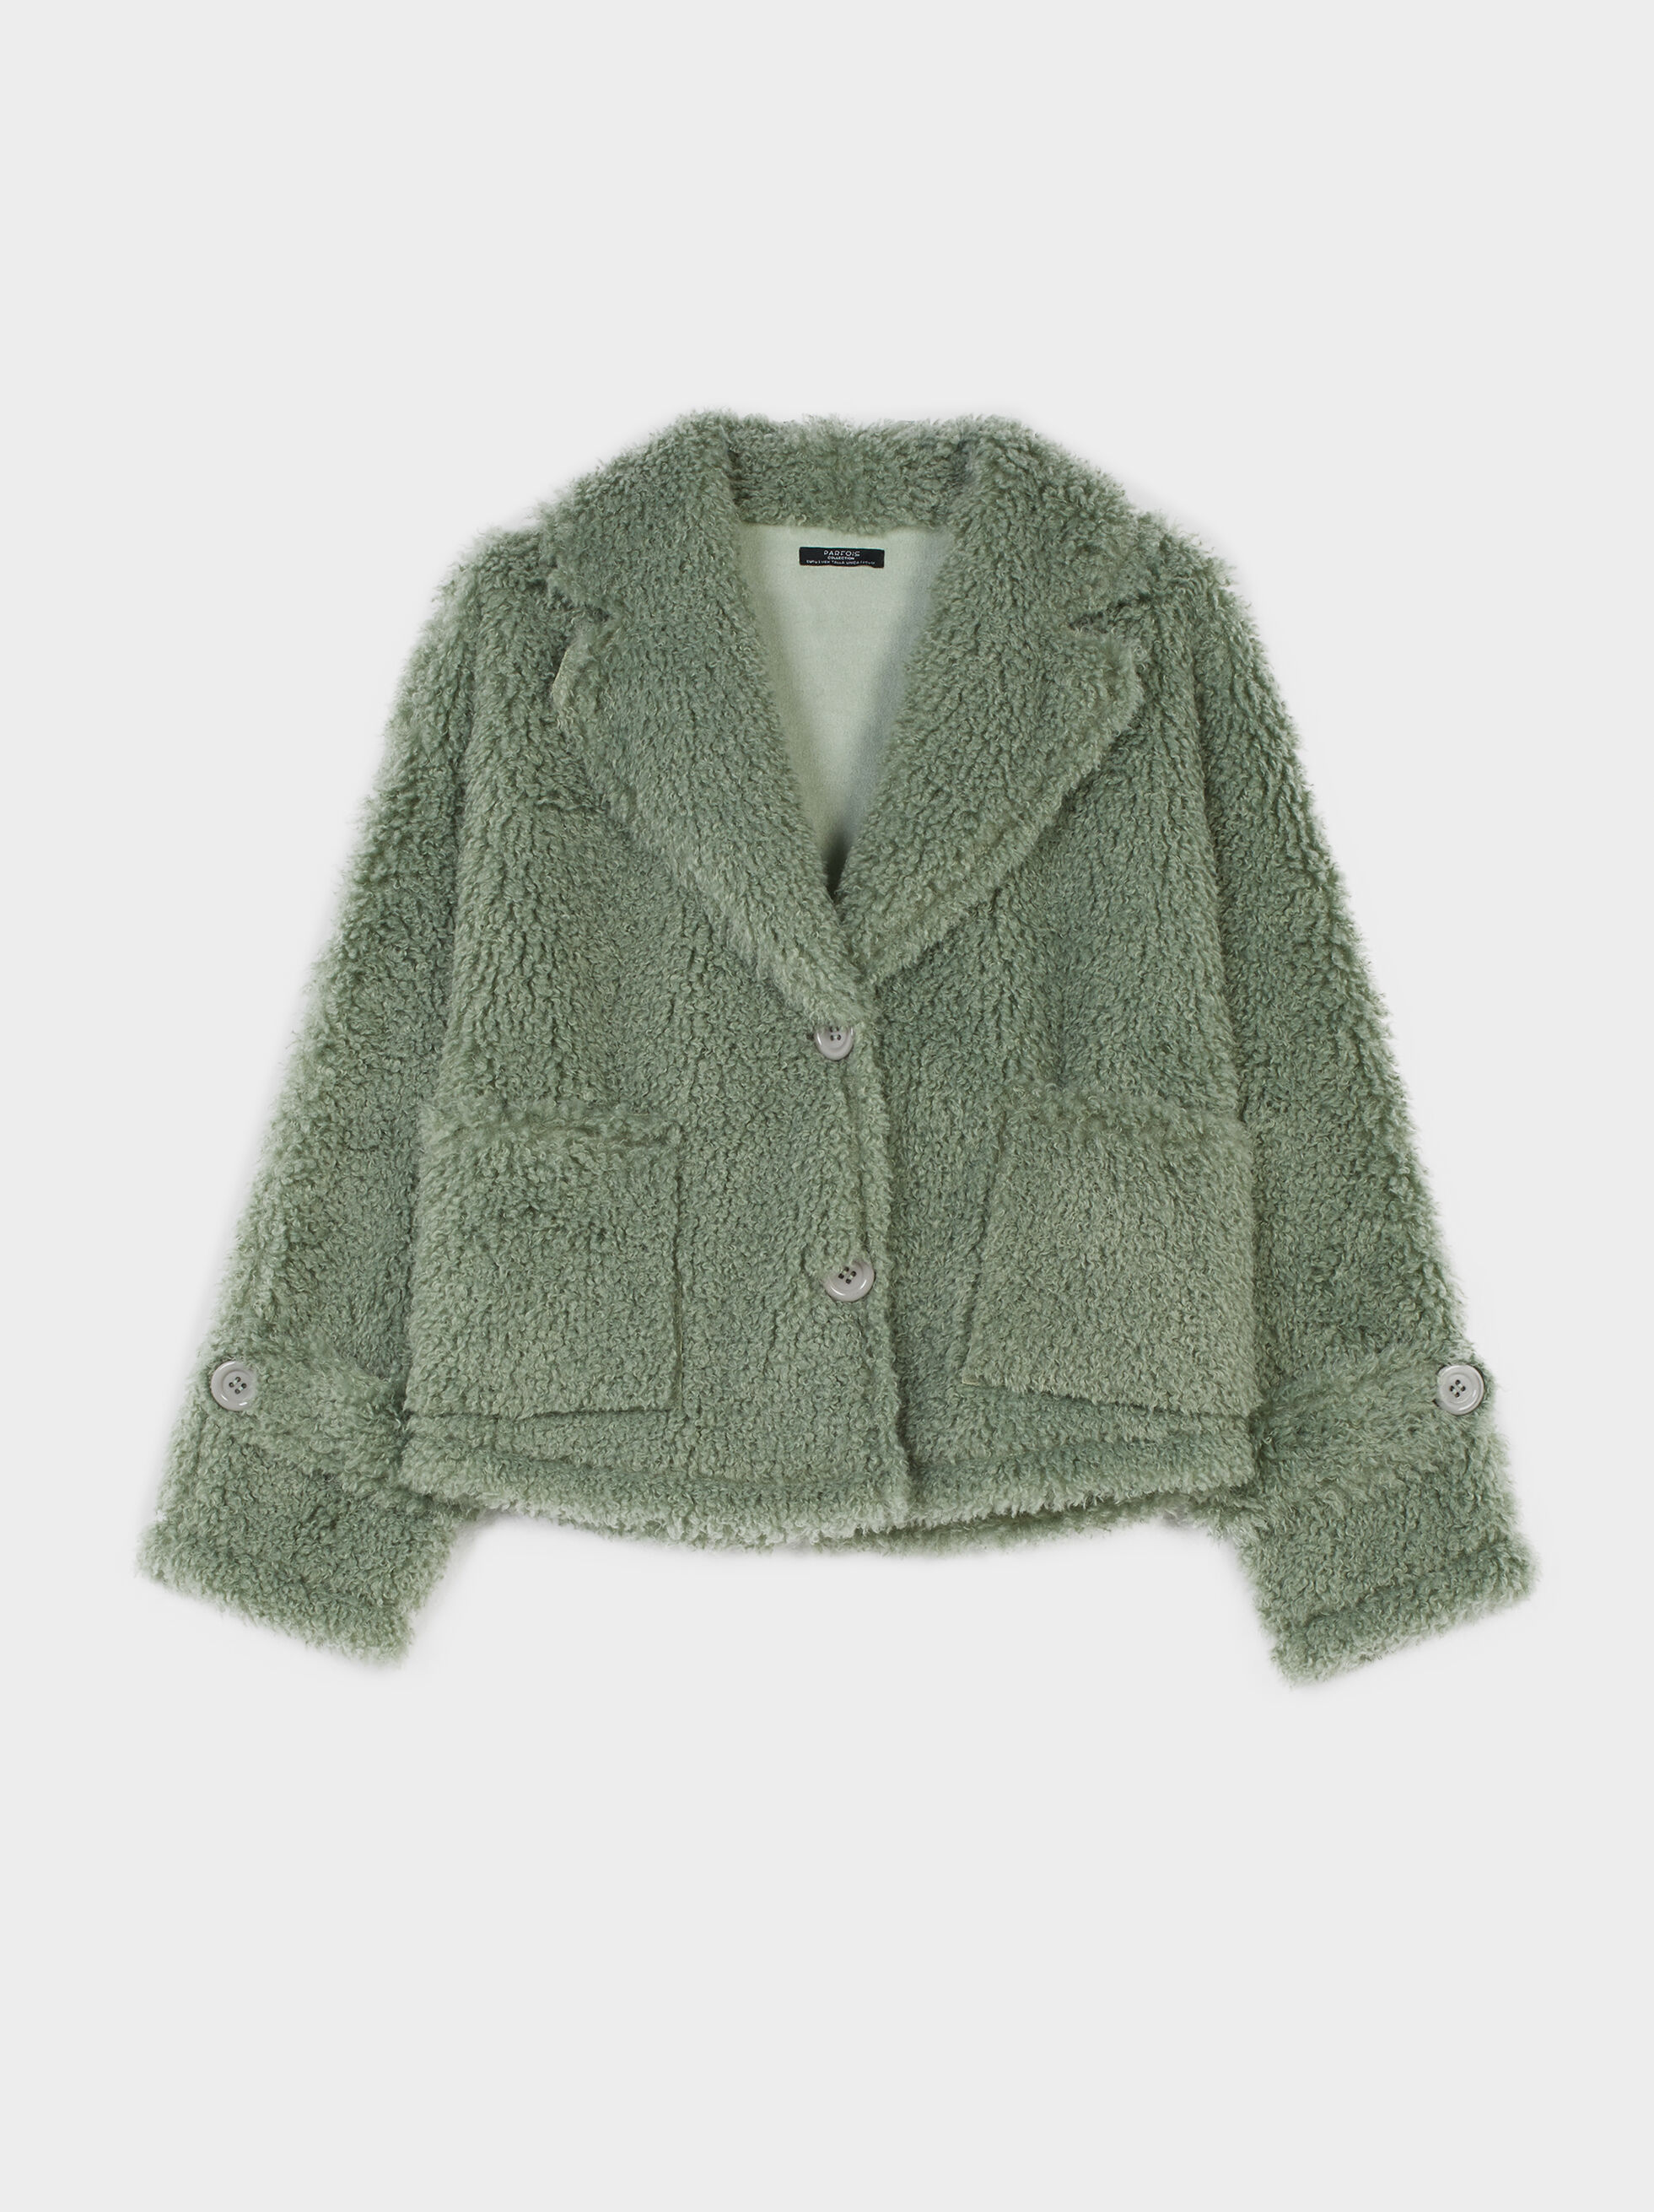 Teddy Coat, Grey, hi-res